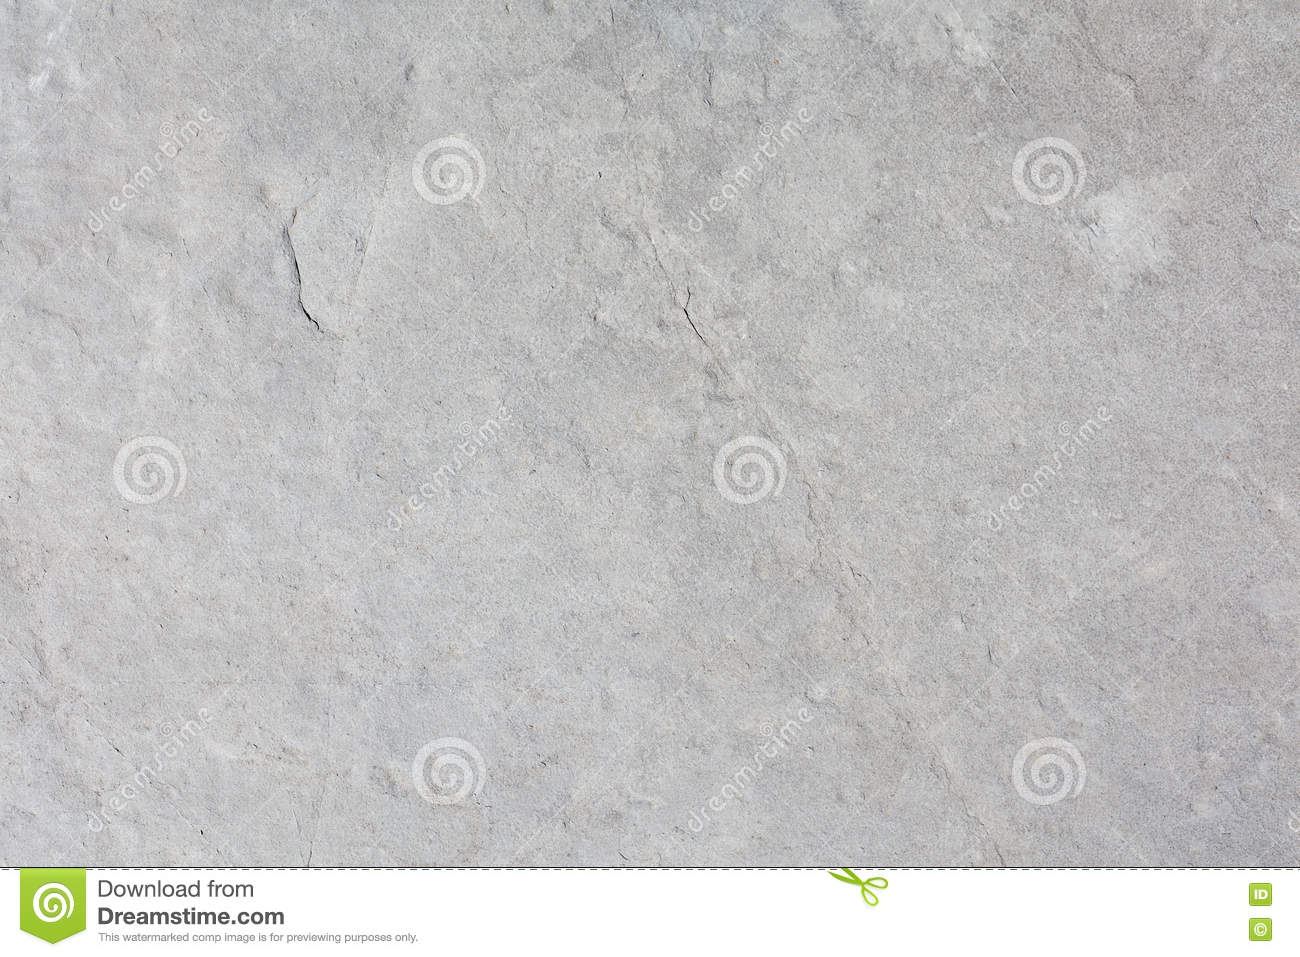 Smooth shaped white stones surface texture background stock photo - Smooth Gray Stone Texture Background Stock Photo